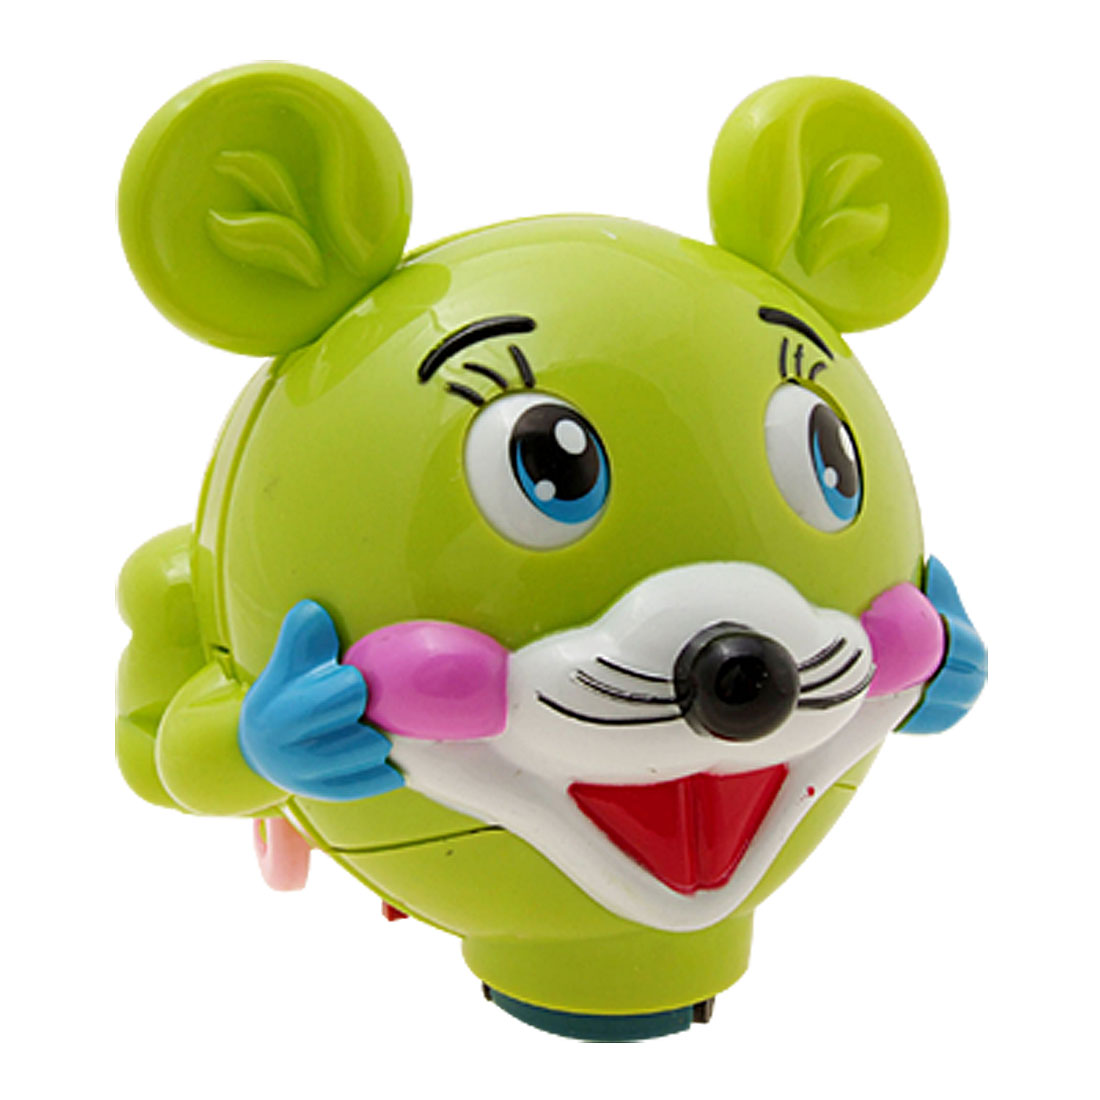 Green Singing Cartoon Fairylike Cute Mouse Kids Toy